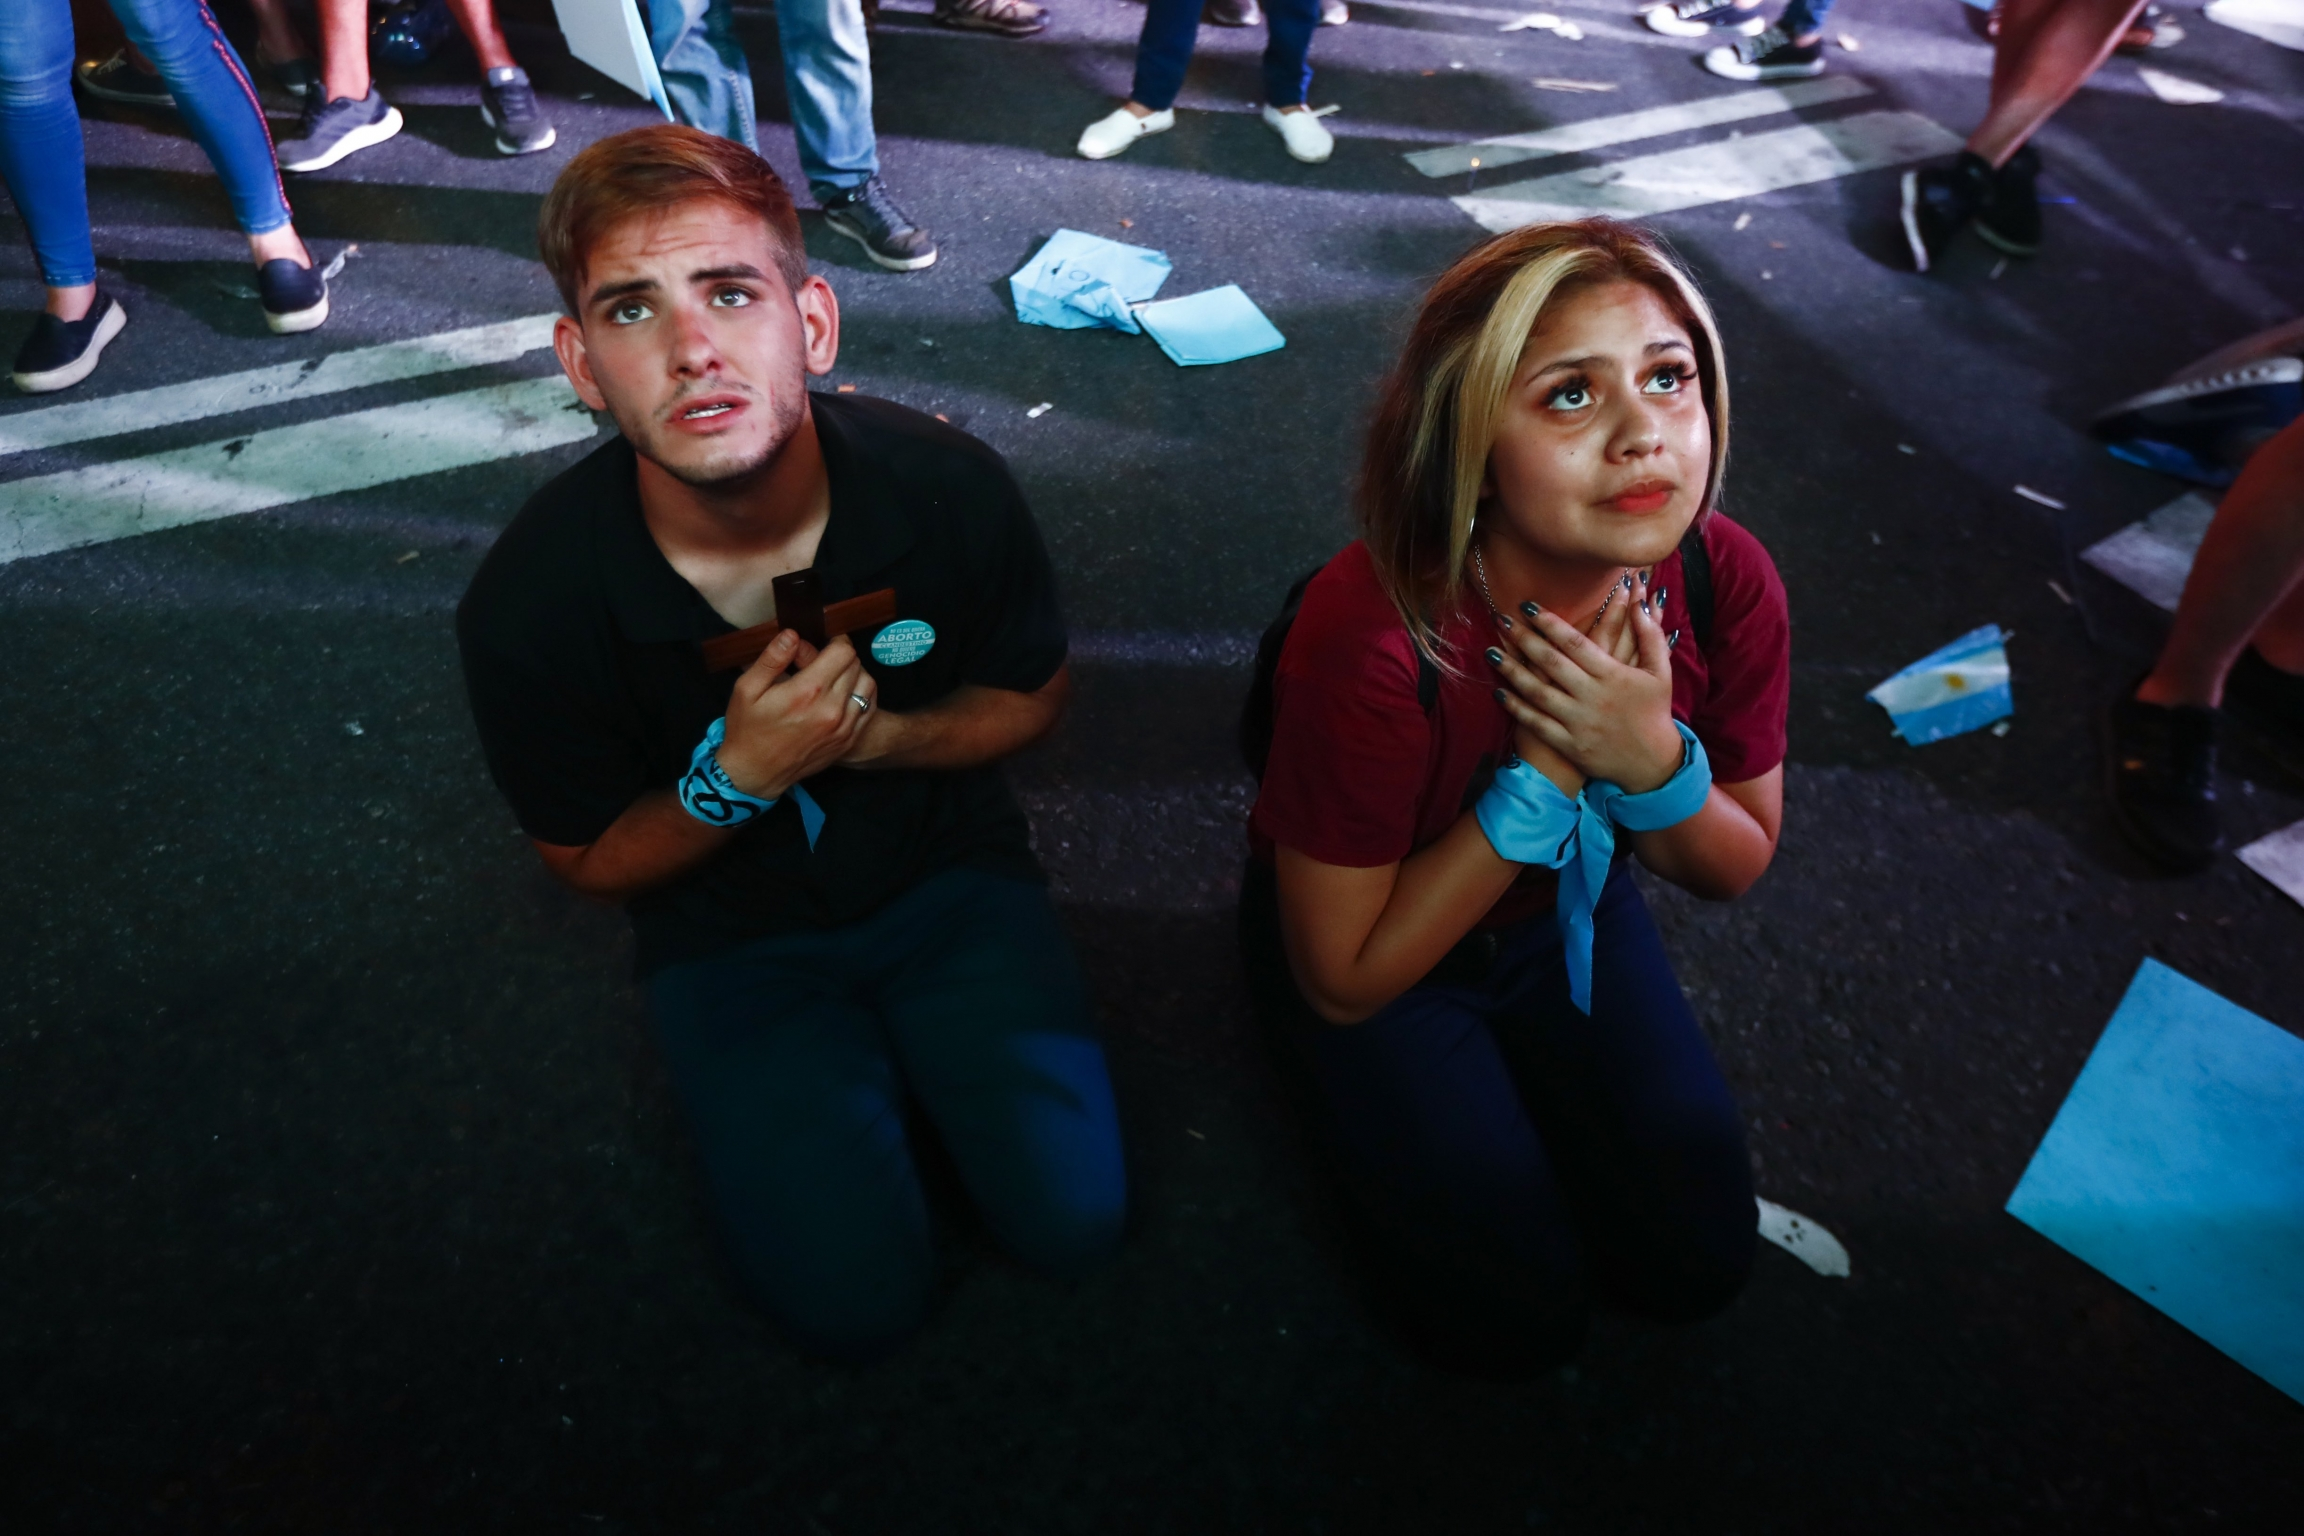 A young man and a young woman, wearing a blue scarf around their wrist, kneel down to pray on the street.